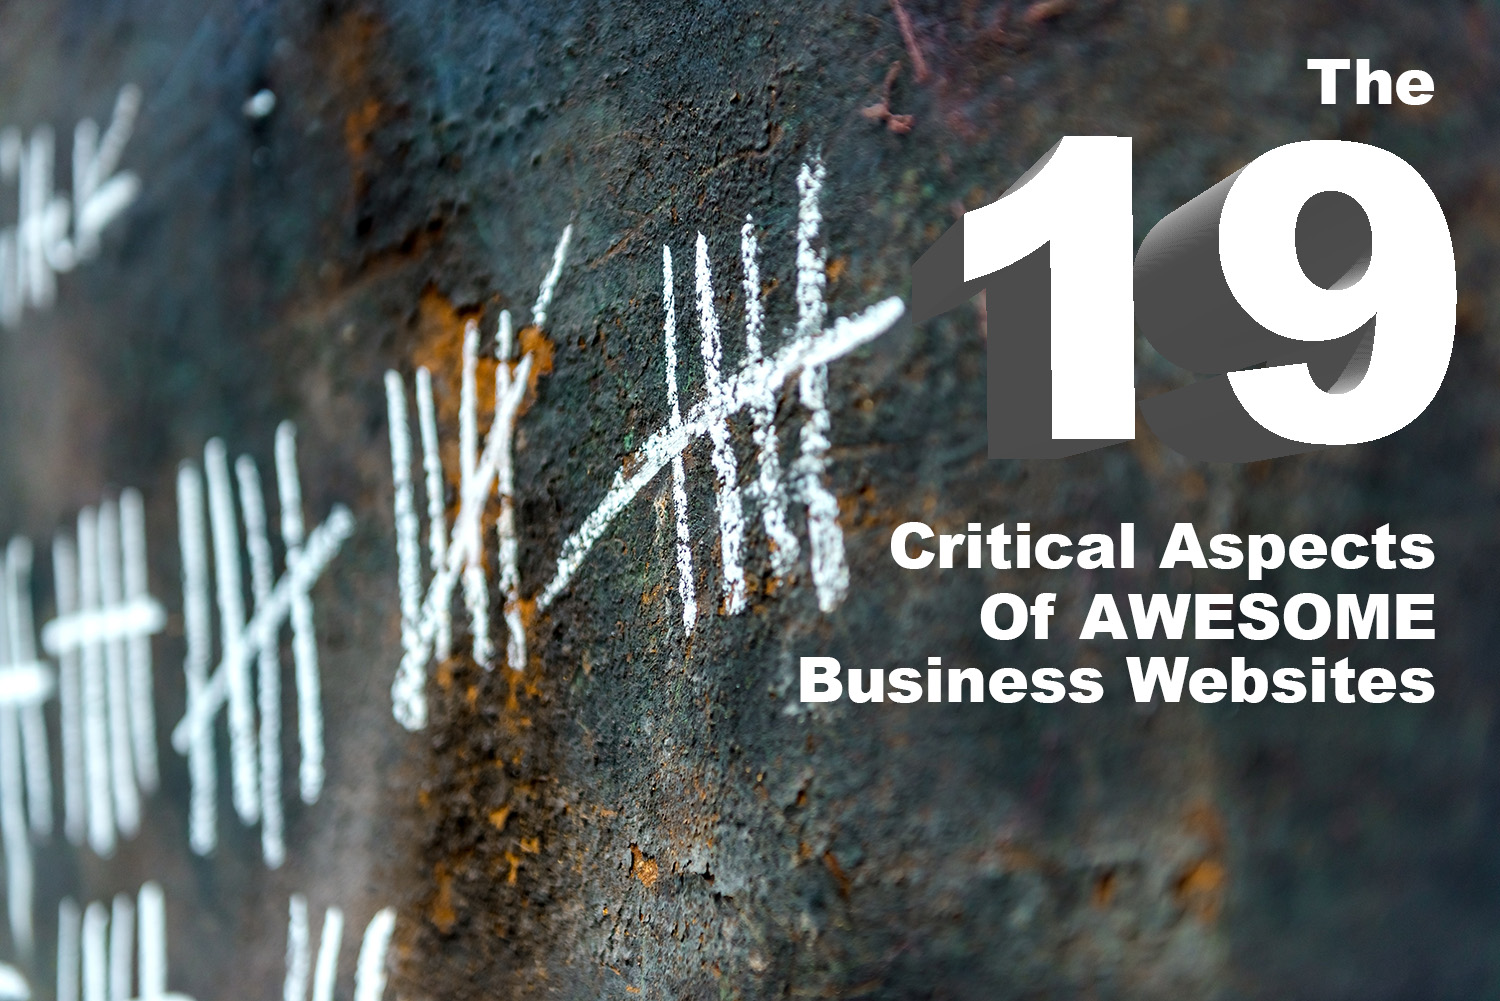 The 19 Critical Aspects Of Awesome Business Websites